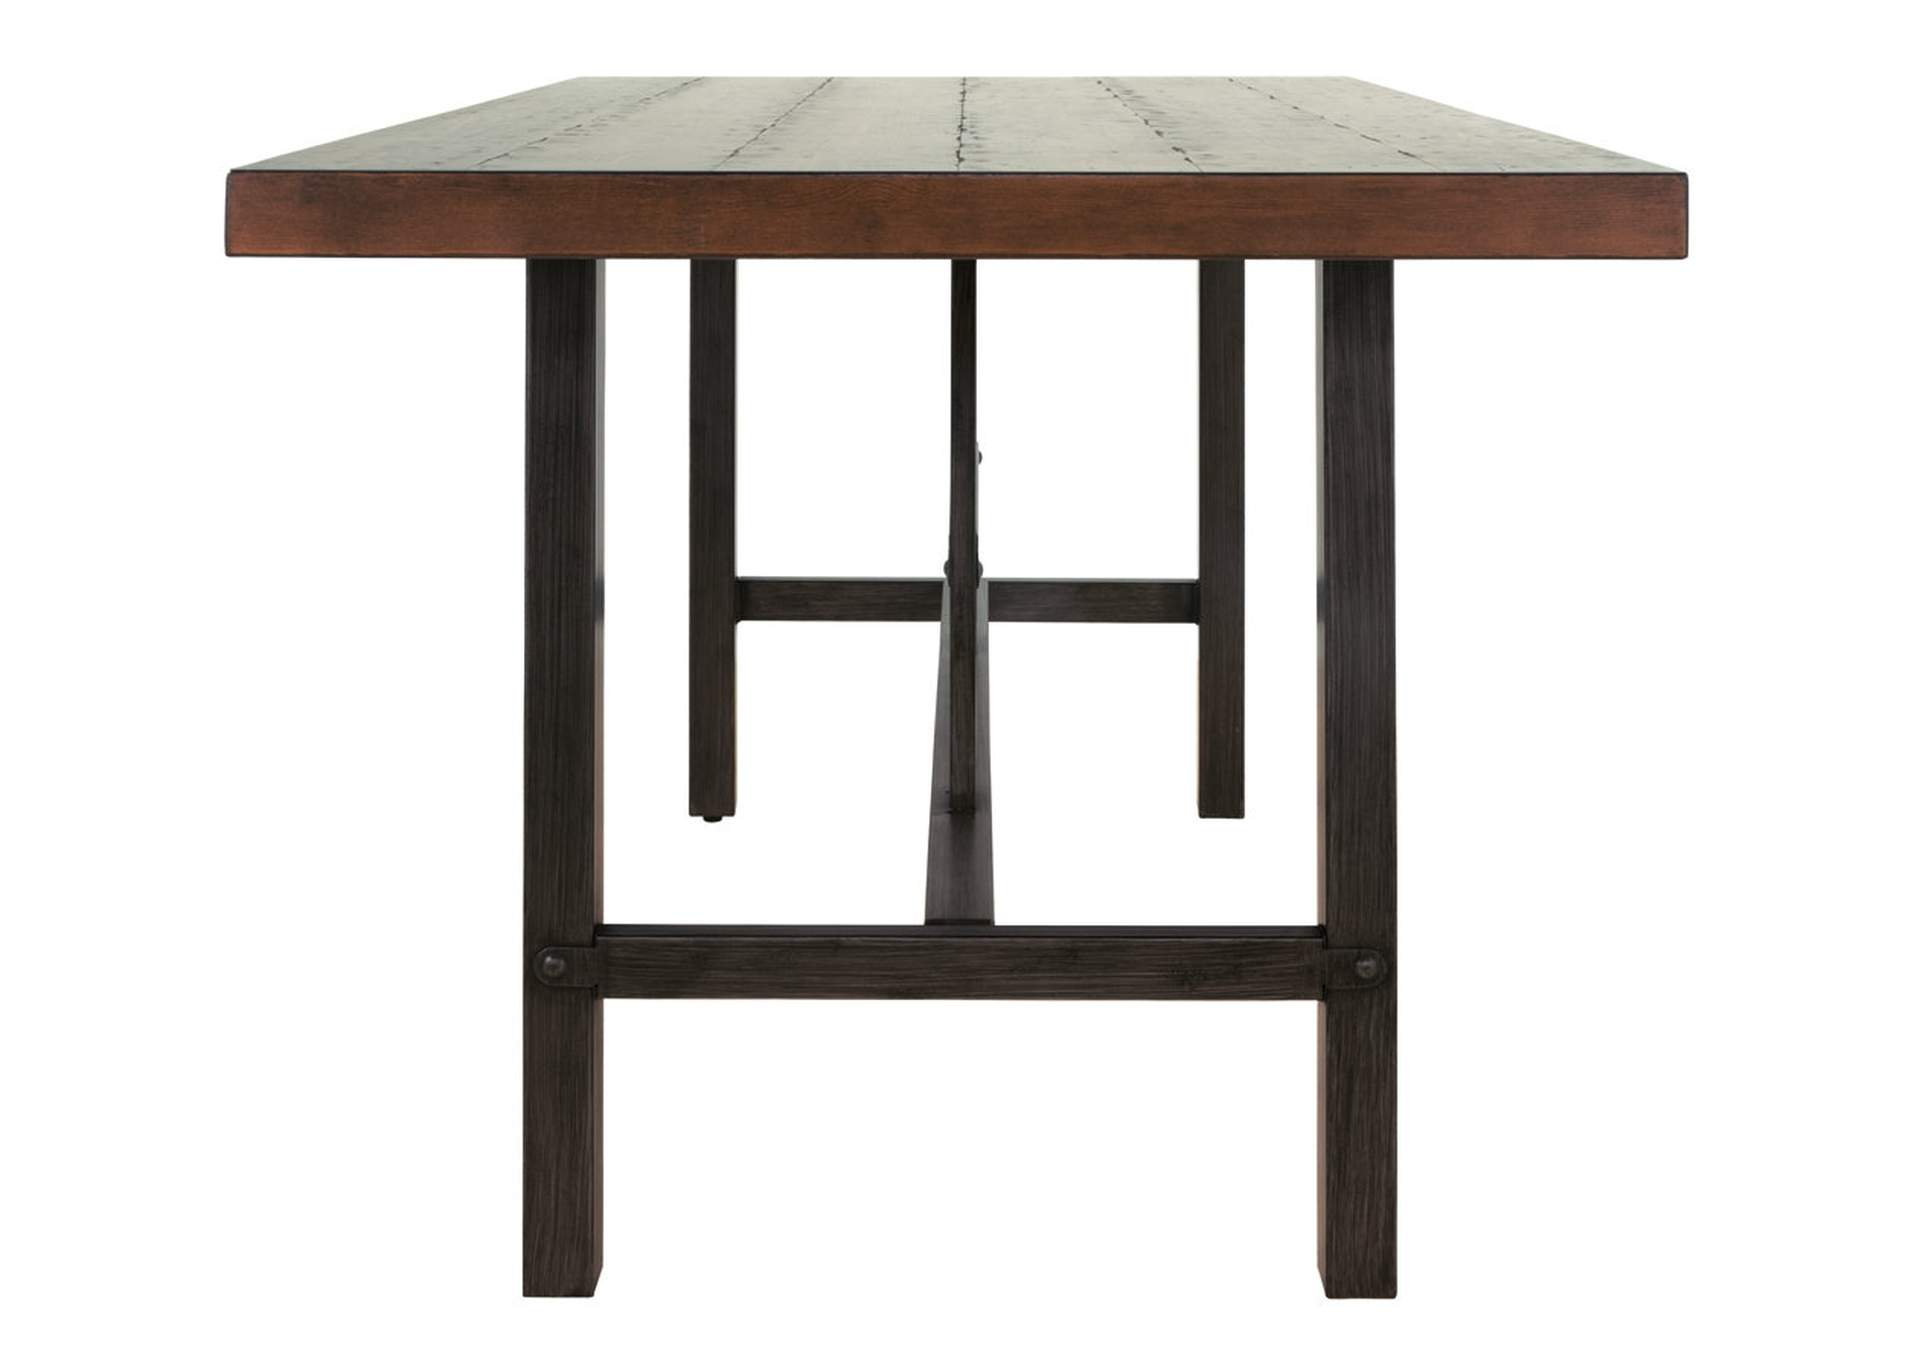 Kavara Medium Brown Rectangular Dining Room Counter Table,Signature Design By Ashley